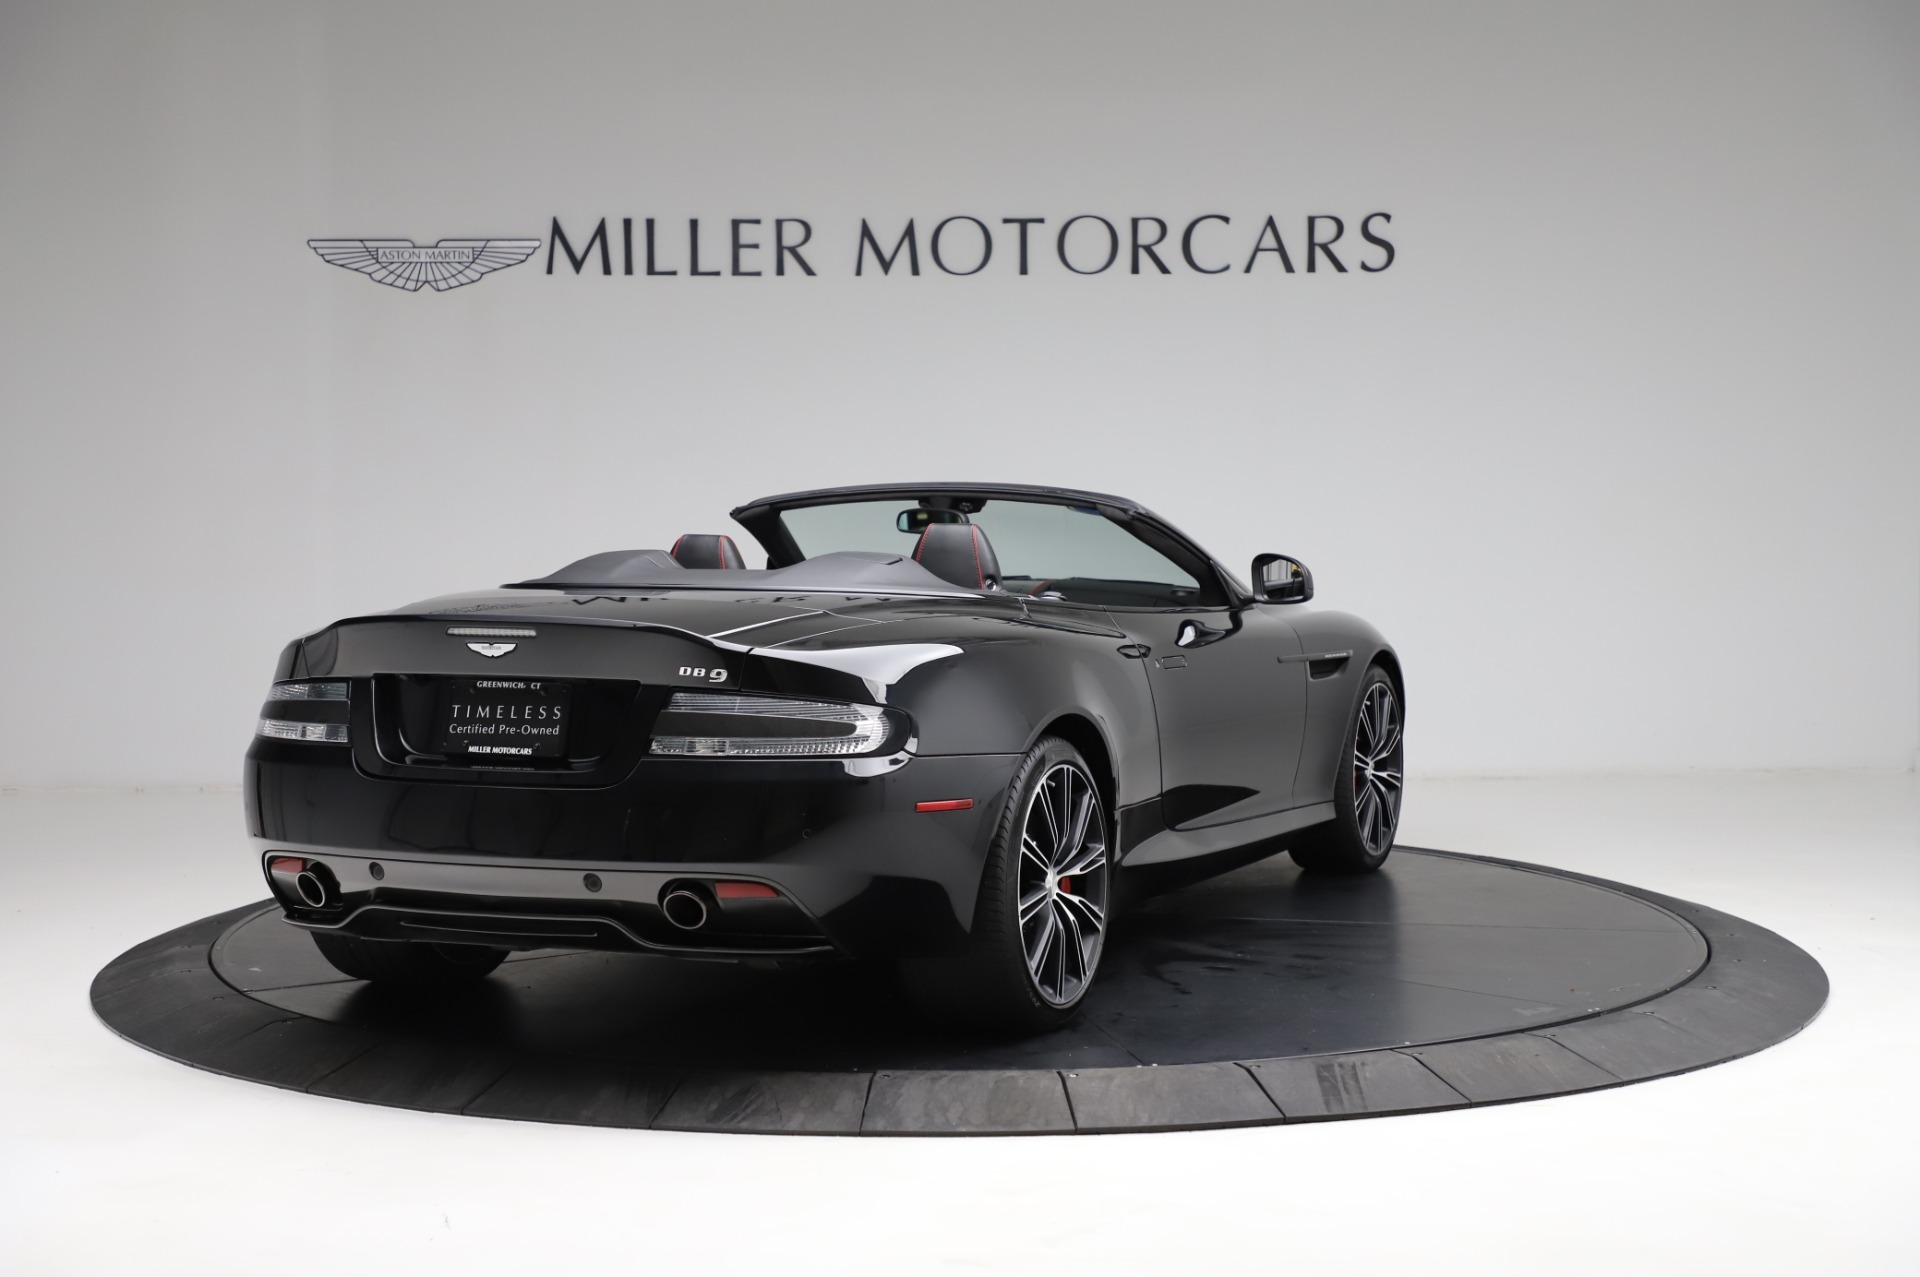 Used 2015 Aston Martin DB9 Convertible For Sale In Greenwich, CT 1919_p6